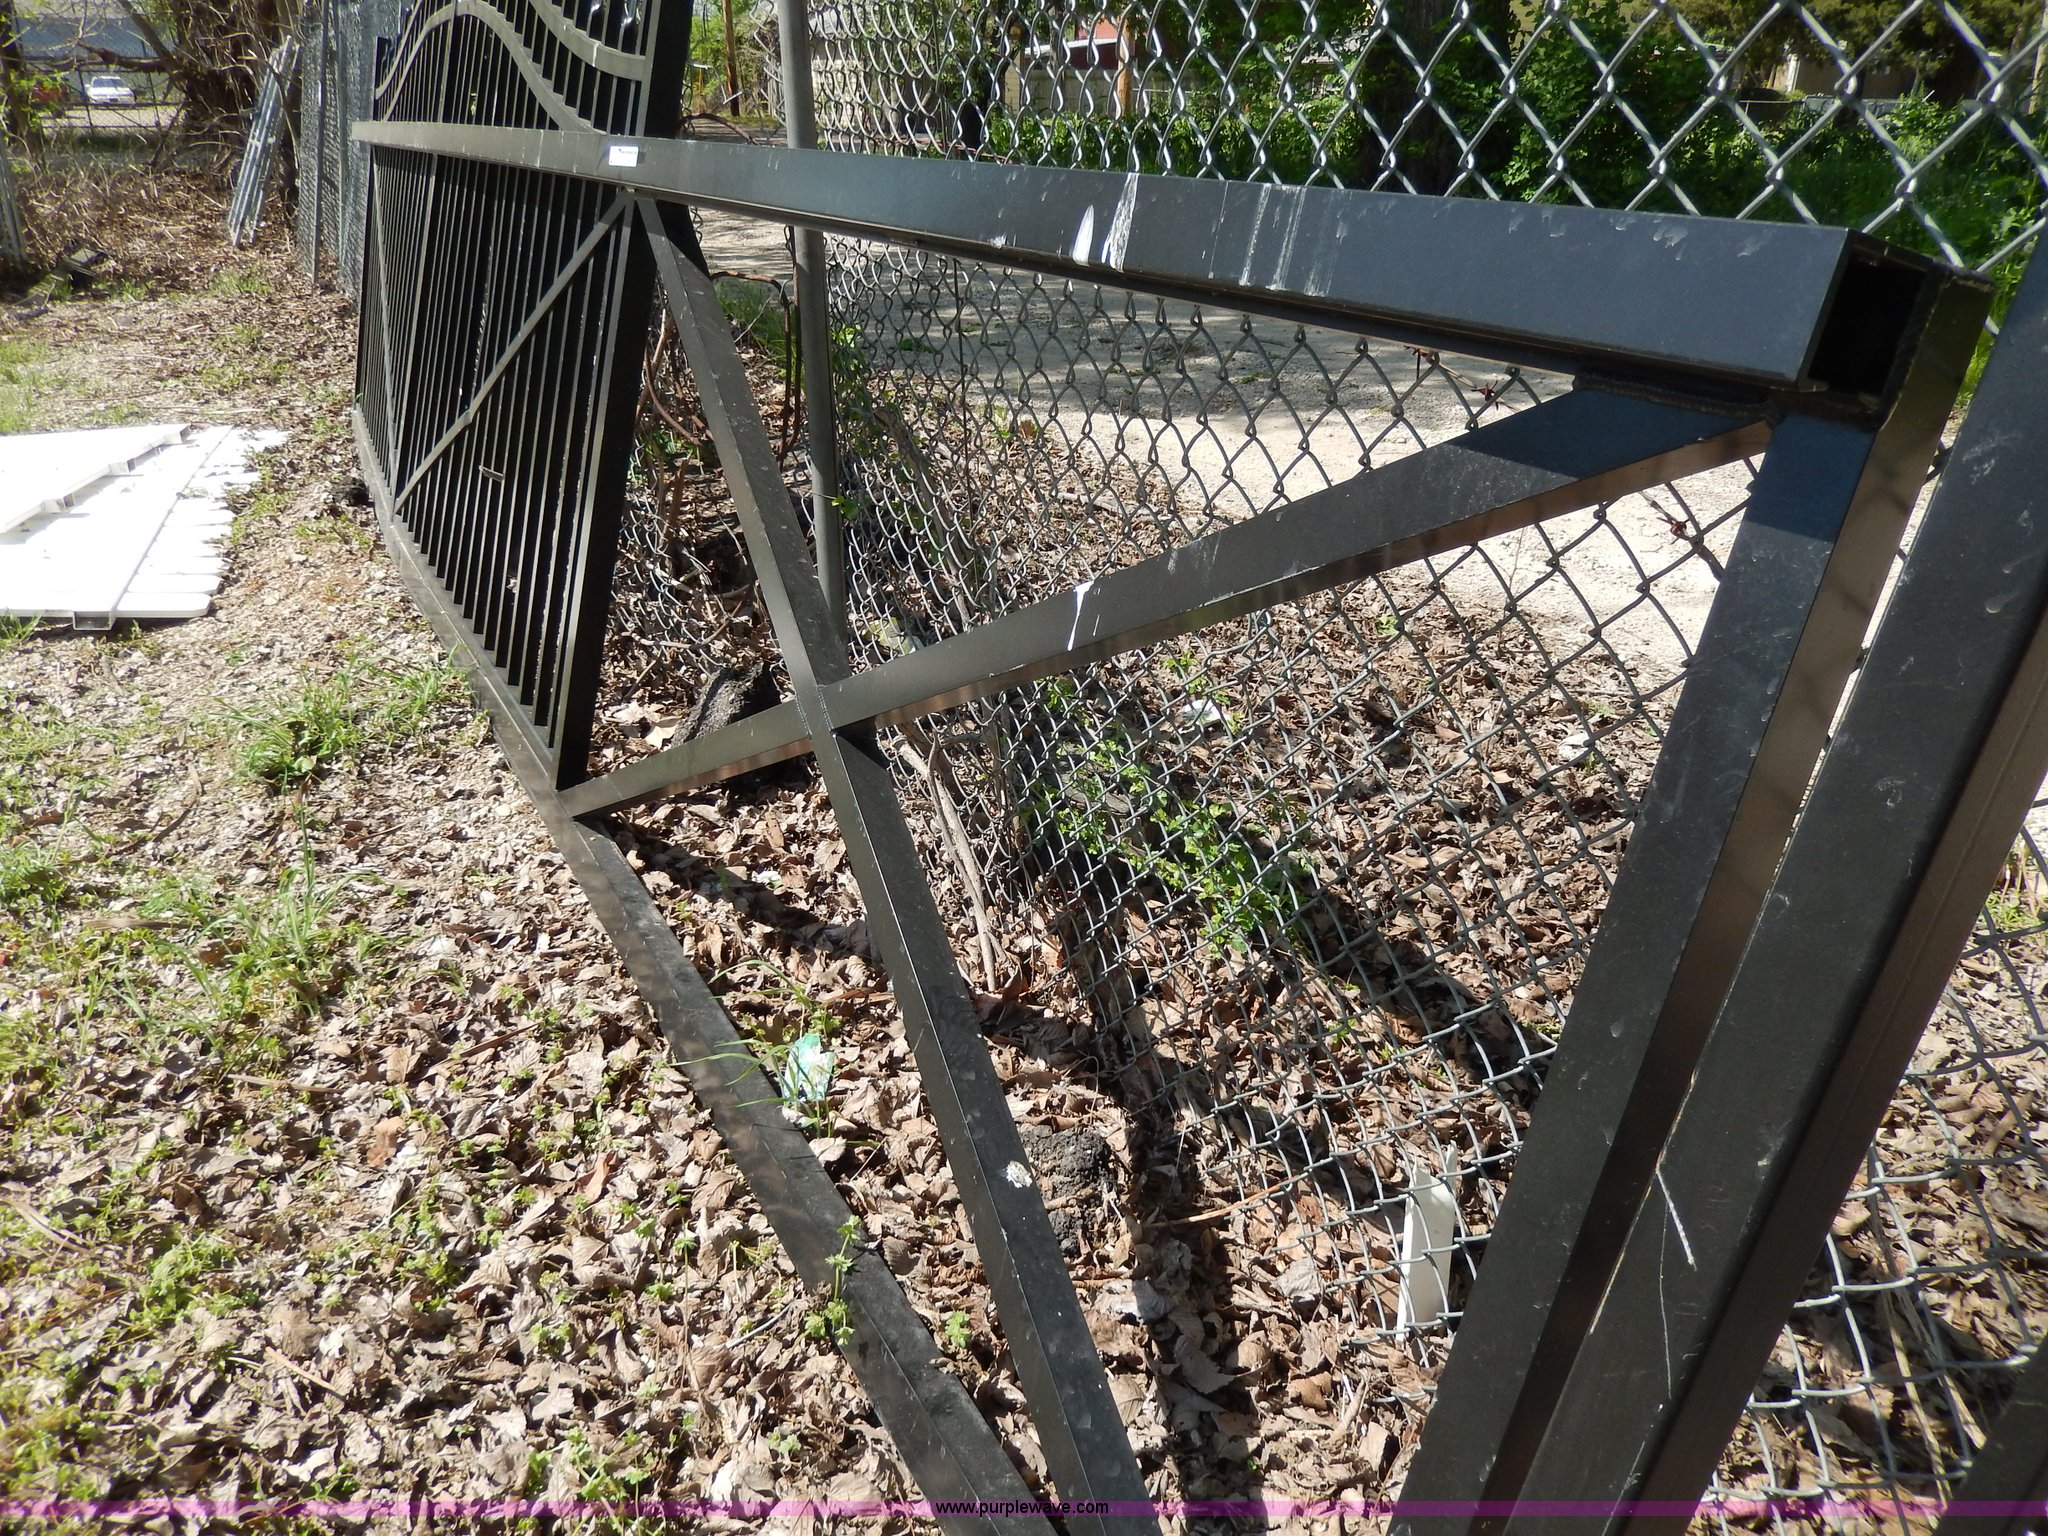 designer square tube metal fence item aa9945 sold june